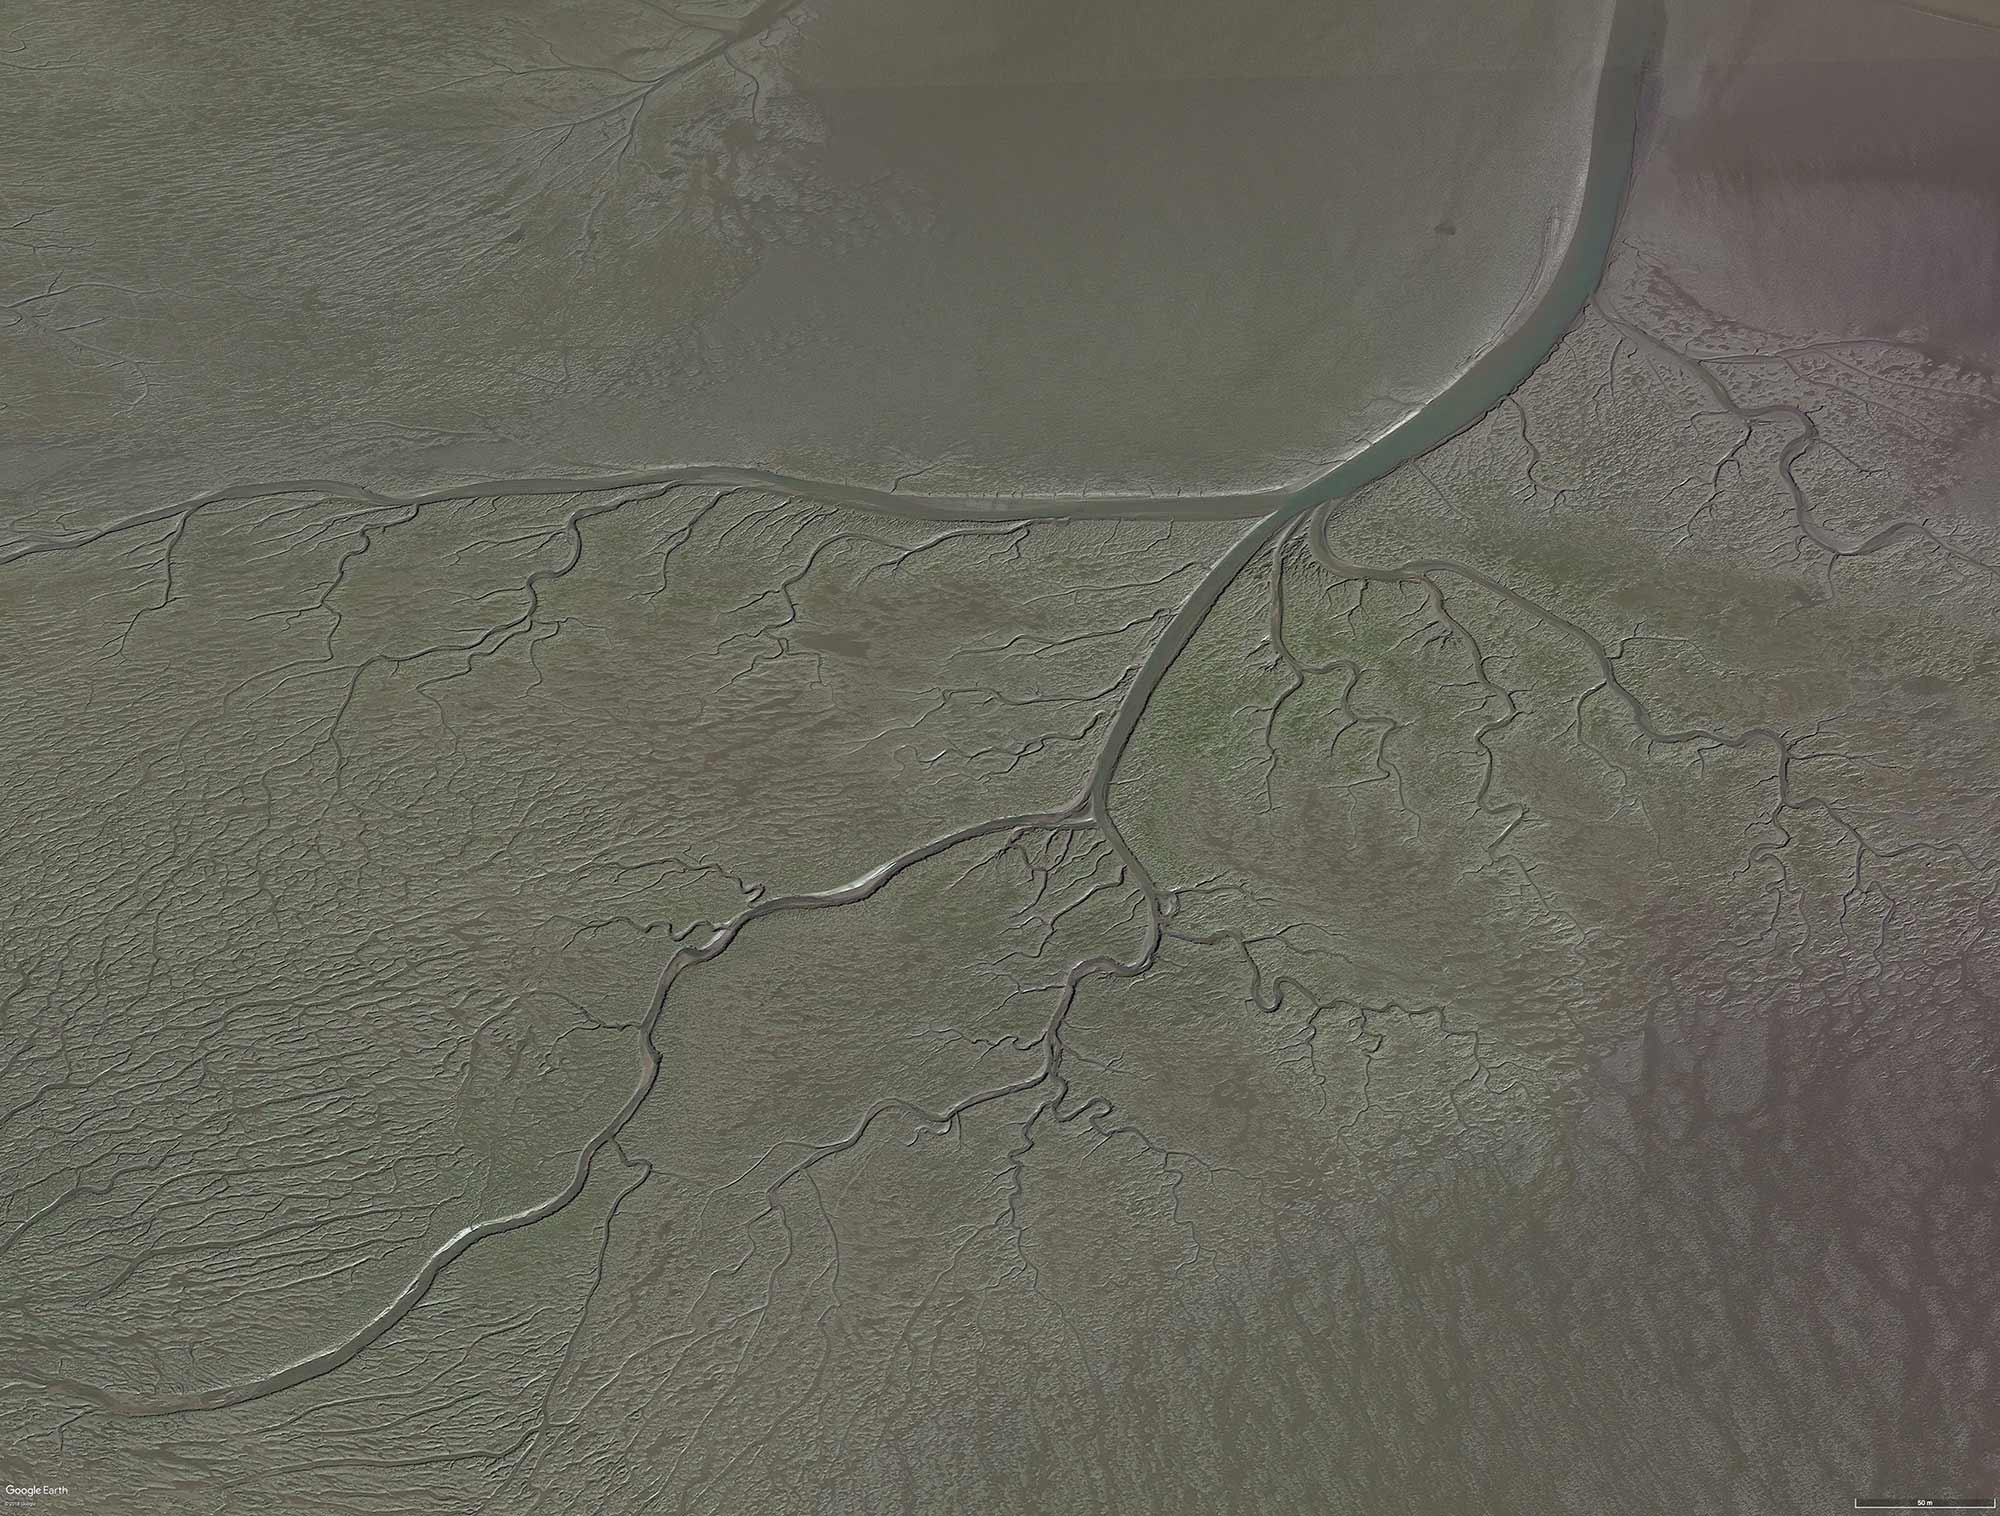 A Lunar Perspective 5:  Image from Google Earth